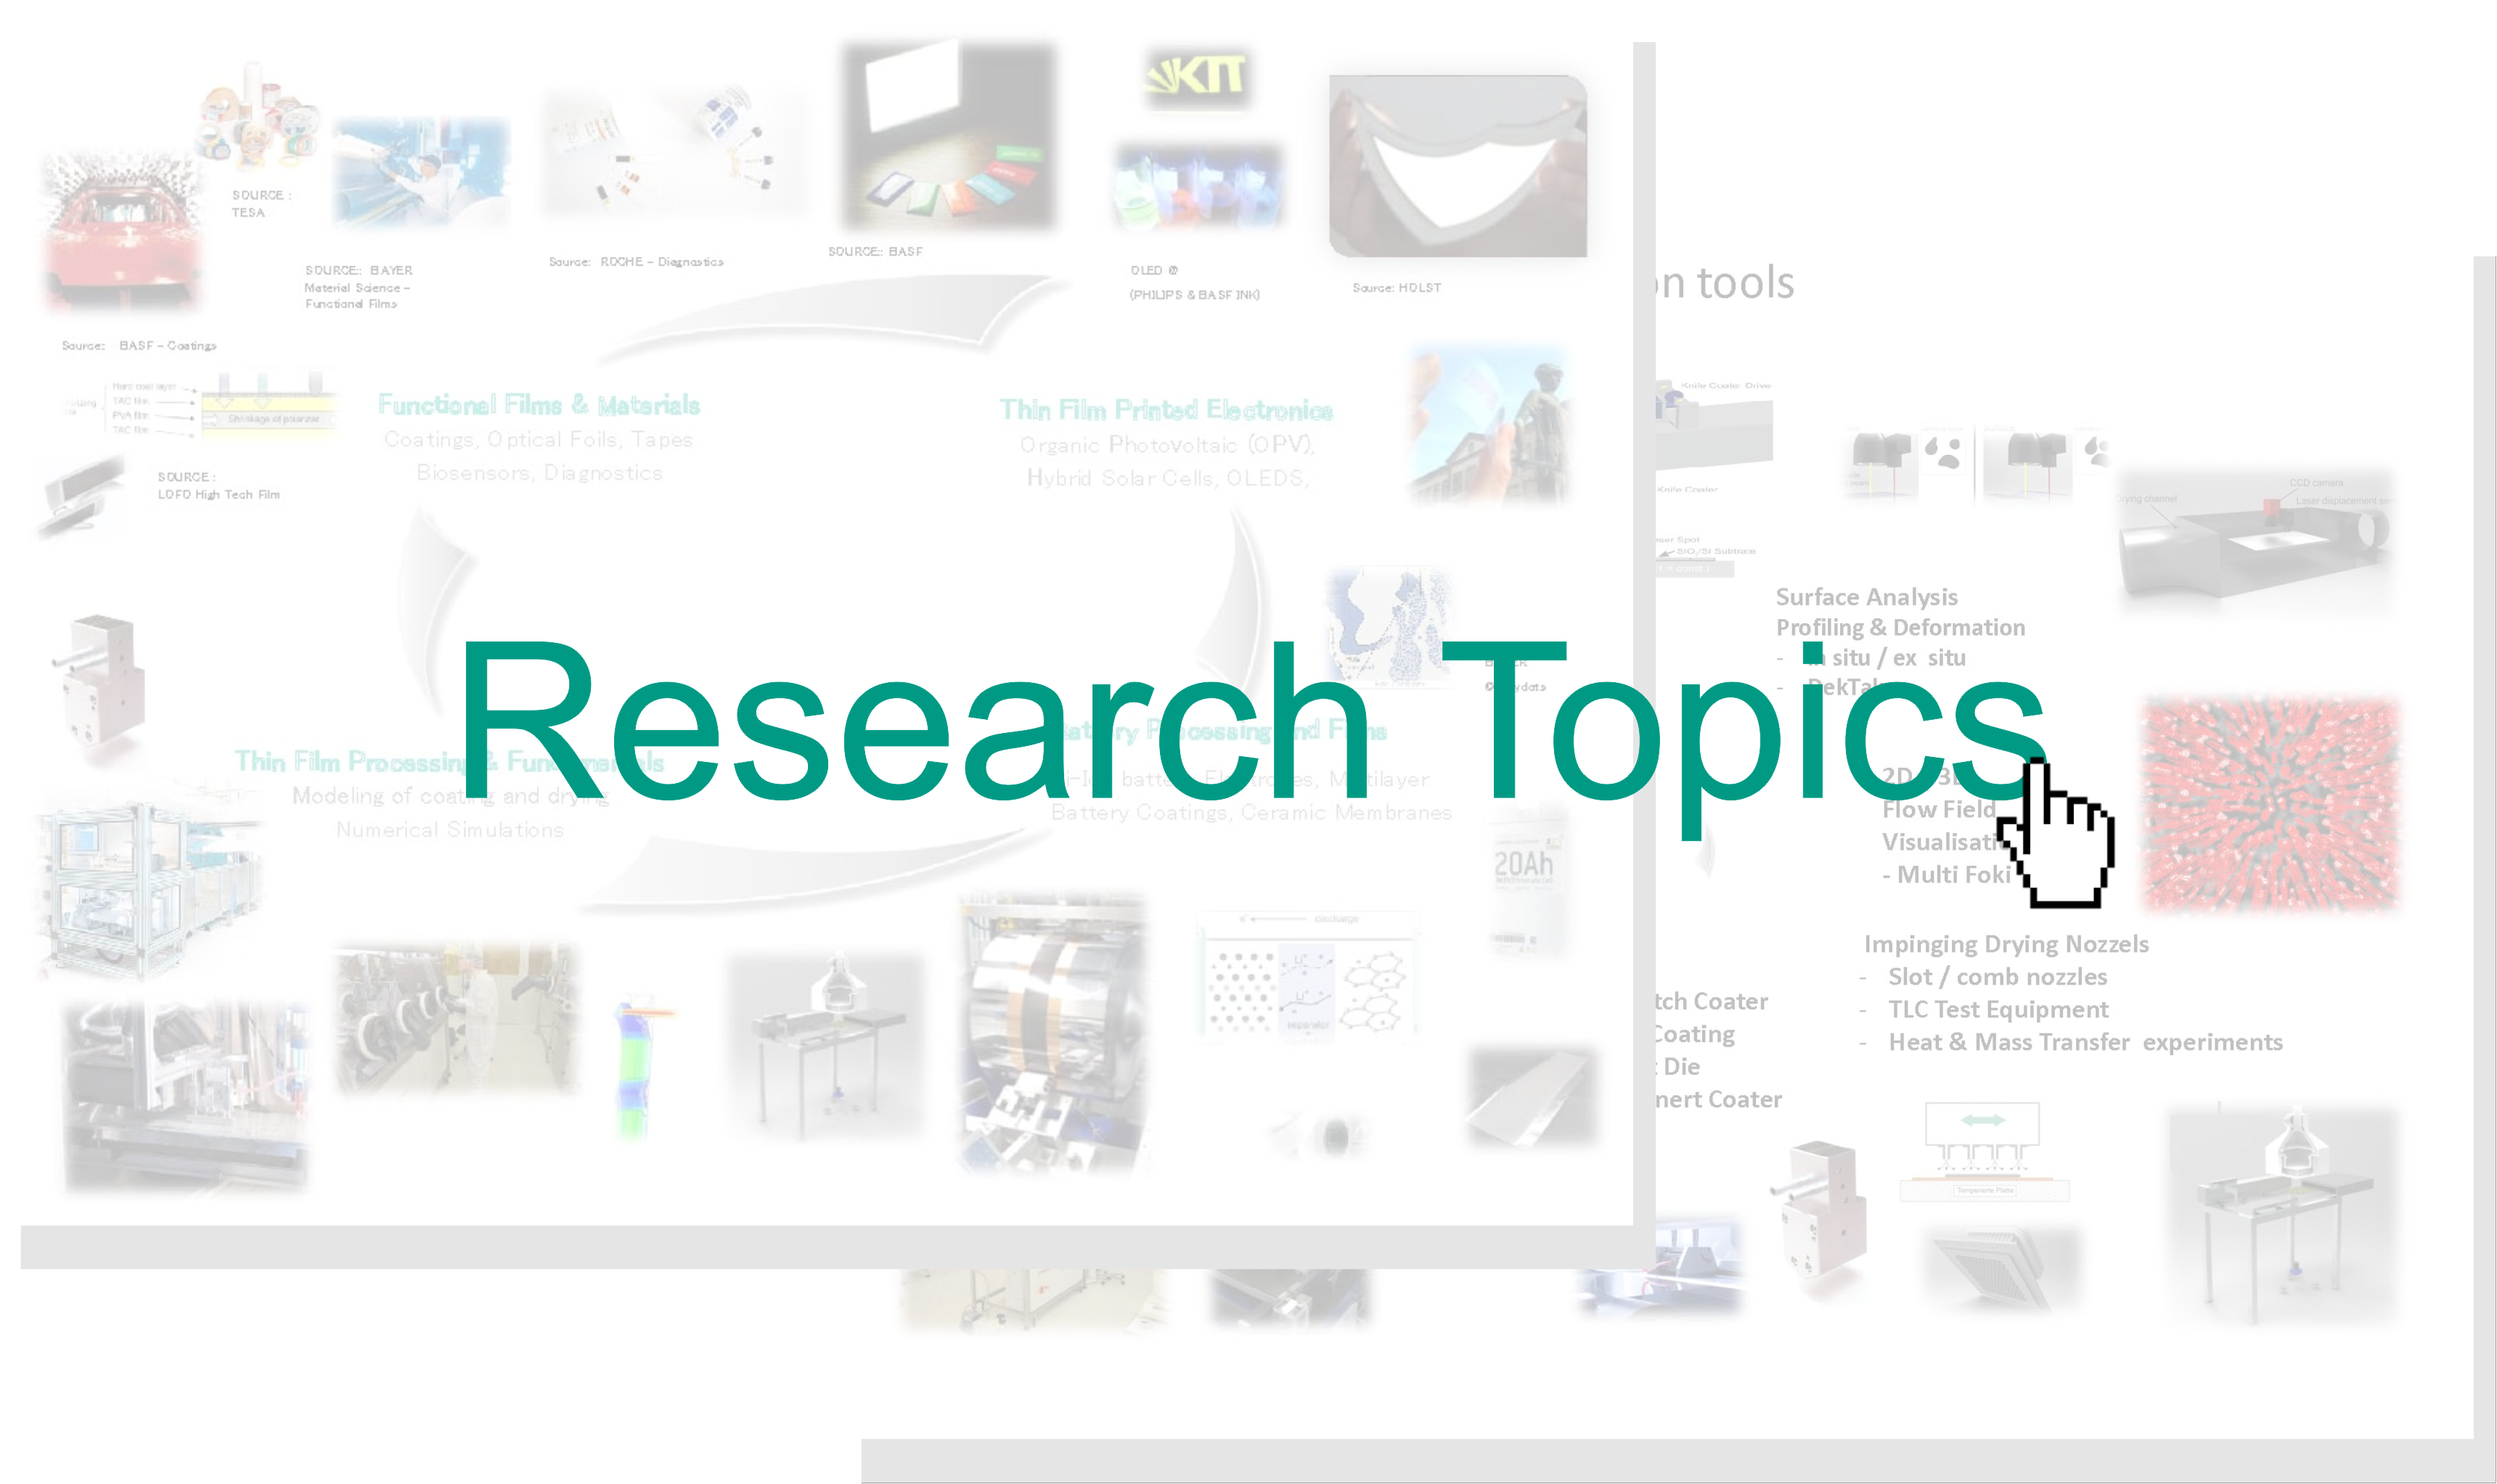 2014-09-02-Research-Topics-banner.png